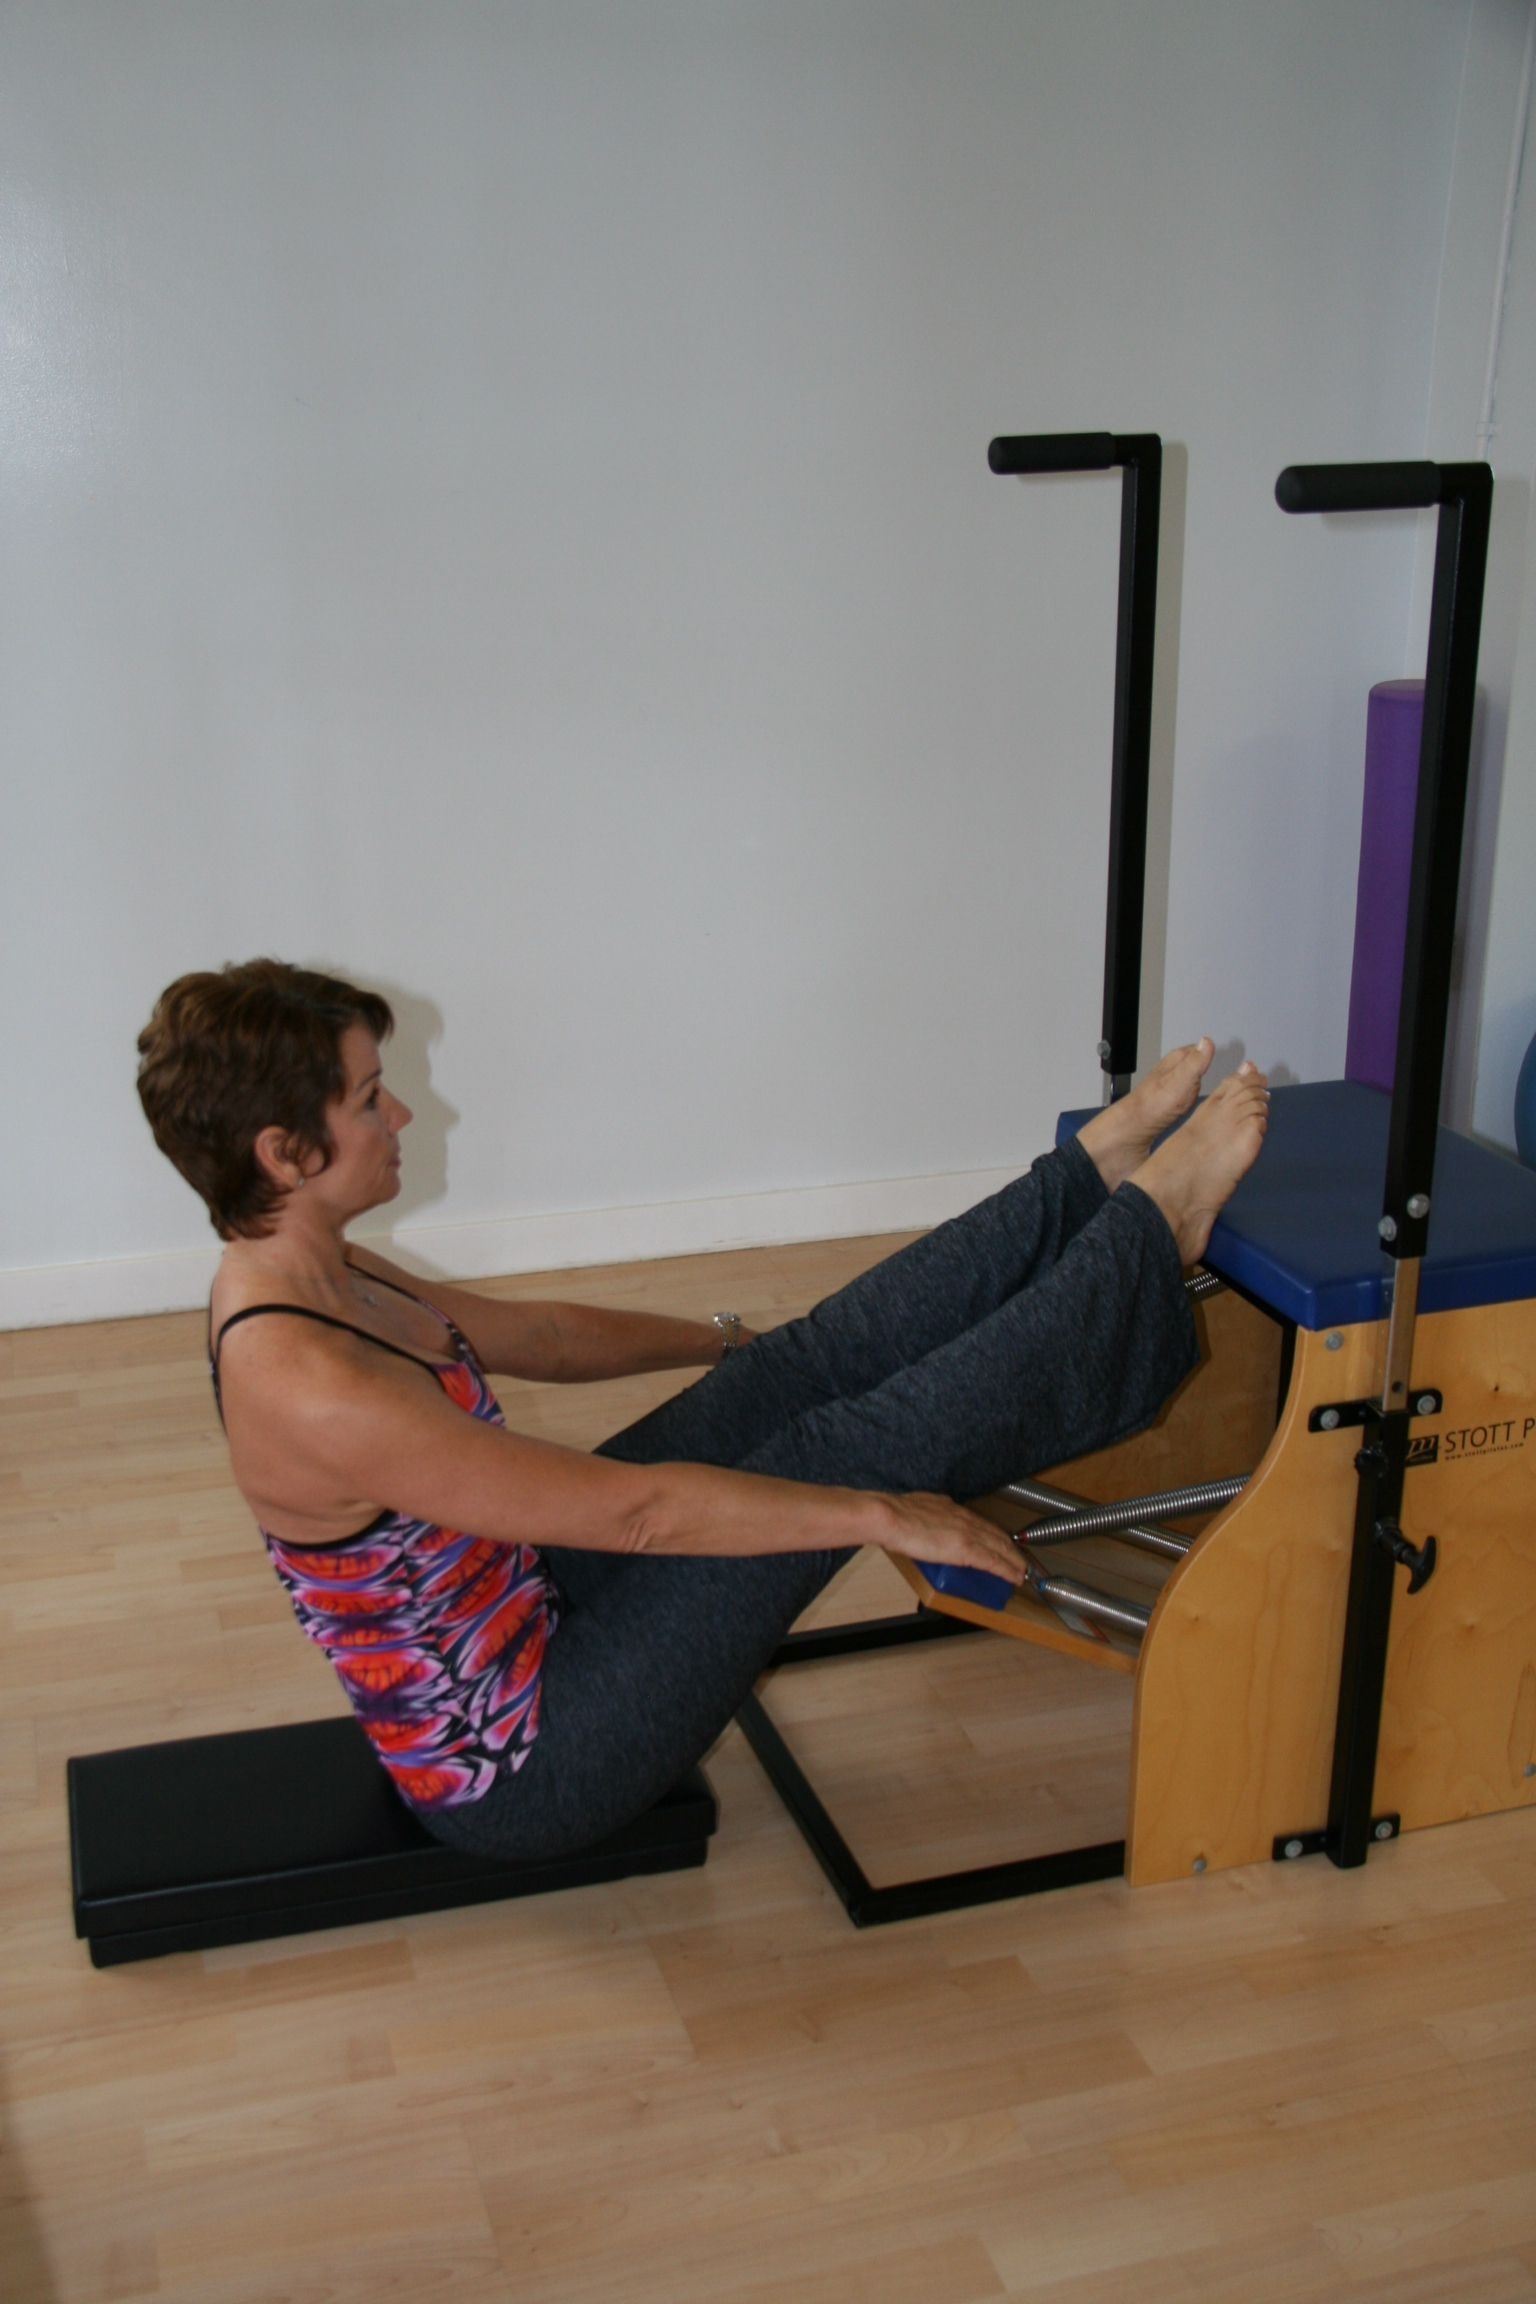 Stability chair workout | Pilates | Pinterest | Chair ...